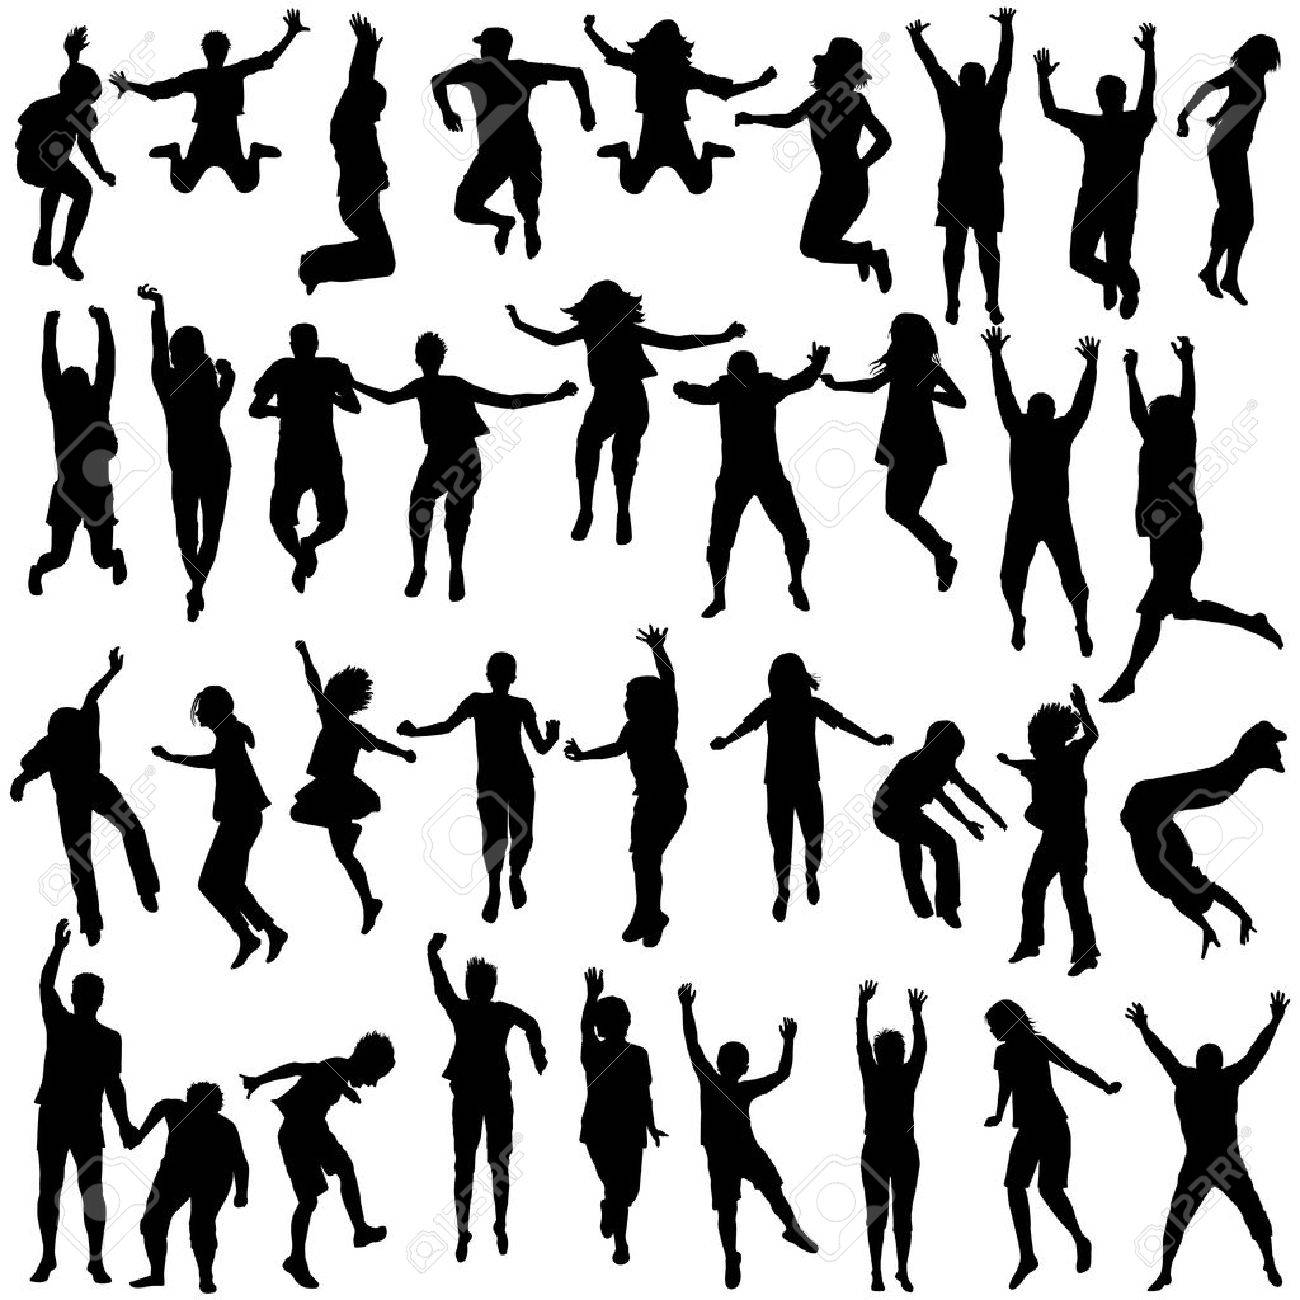 Silhouettes set of children and young people jumping - 50531007